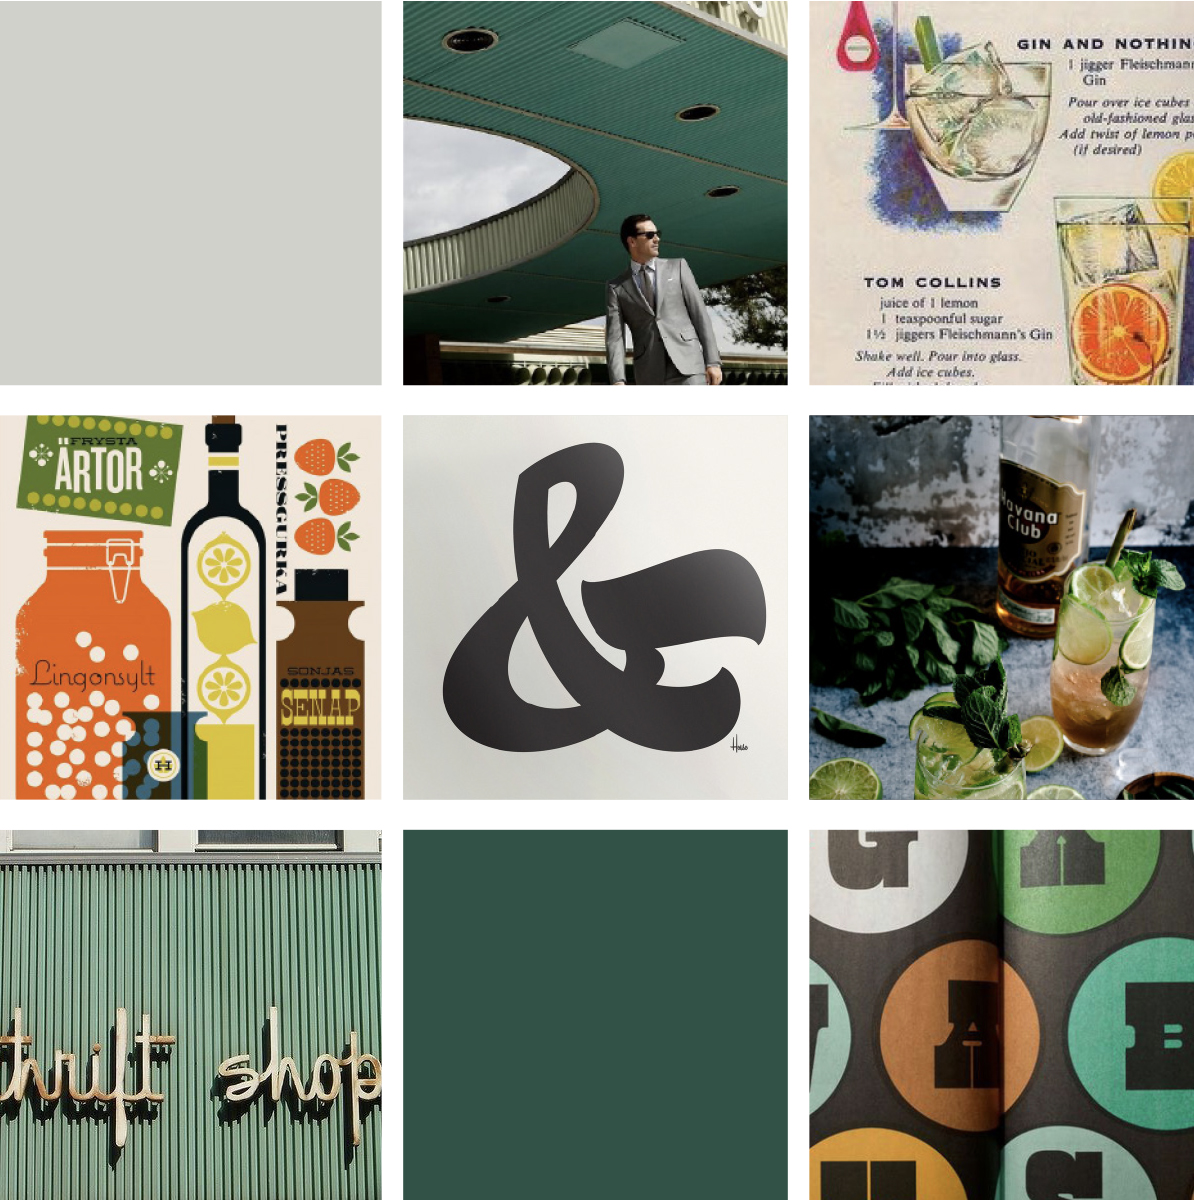 Option 2 -  Using inspiration heavily from House Industries, this mood board was based off a more quirky take of mid-century design. Decade specific script, color block graphics, illustrations of drinks + of course DD helped this mood board evoke a calming but interesting point of view. The teal + orange are wonderful colors to play with, since we can envision a lot of vodka recipes including those colors.